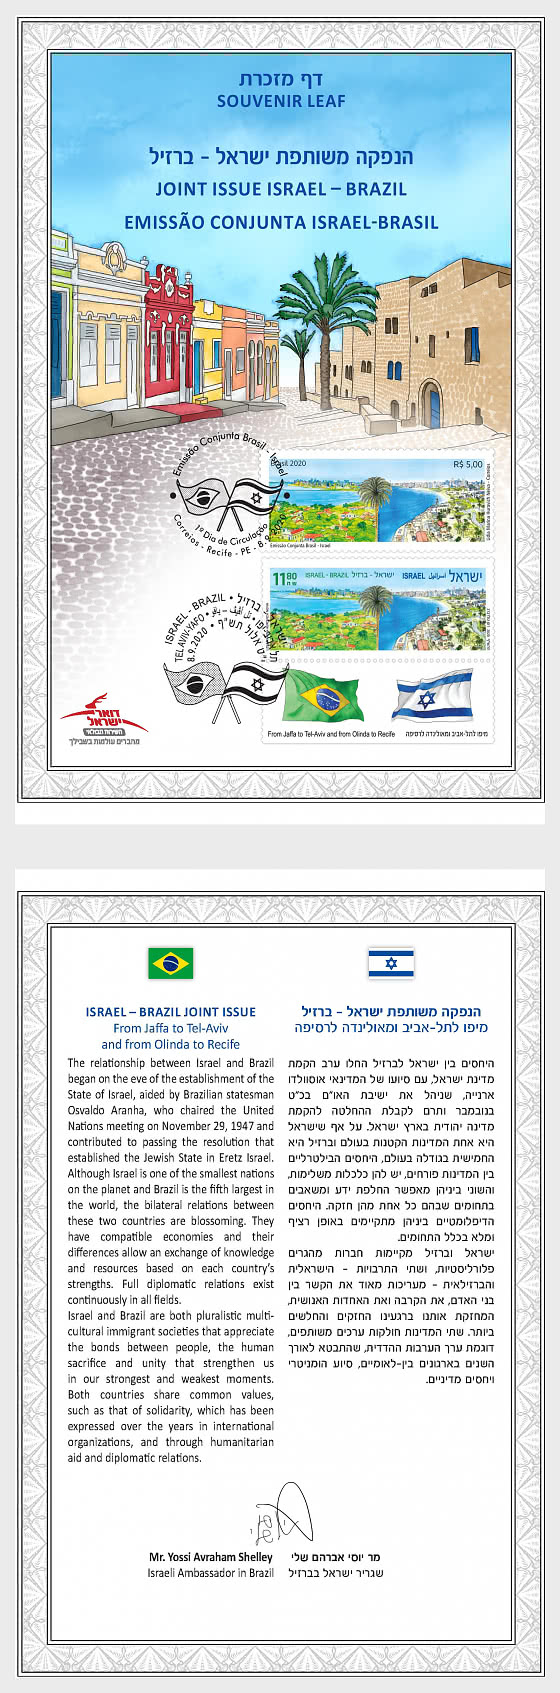 Israel-Brazil Joint Issue - Organisational Souvenir Leaf - Collectibles